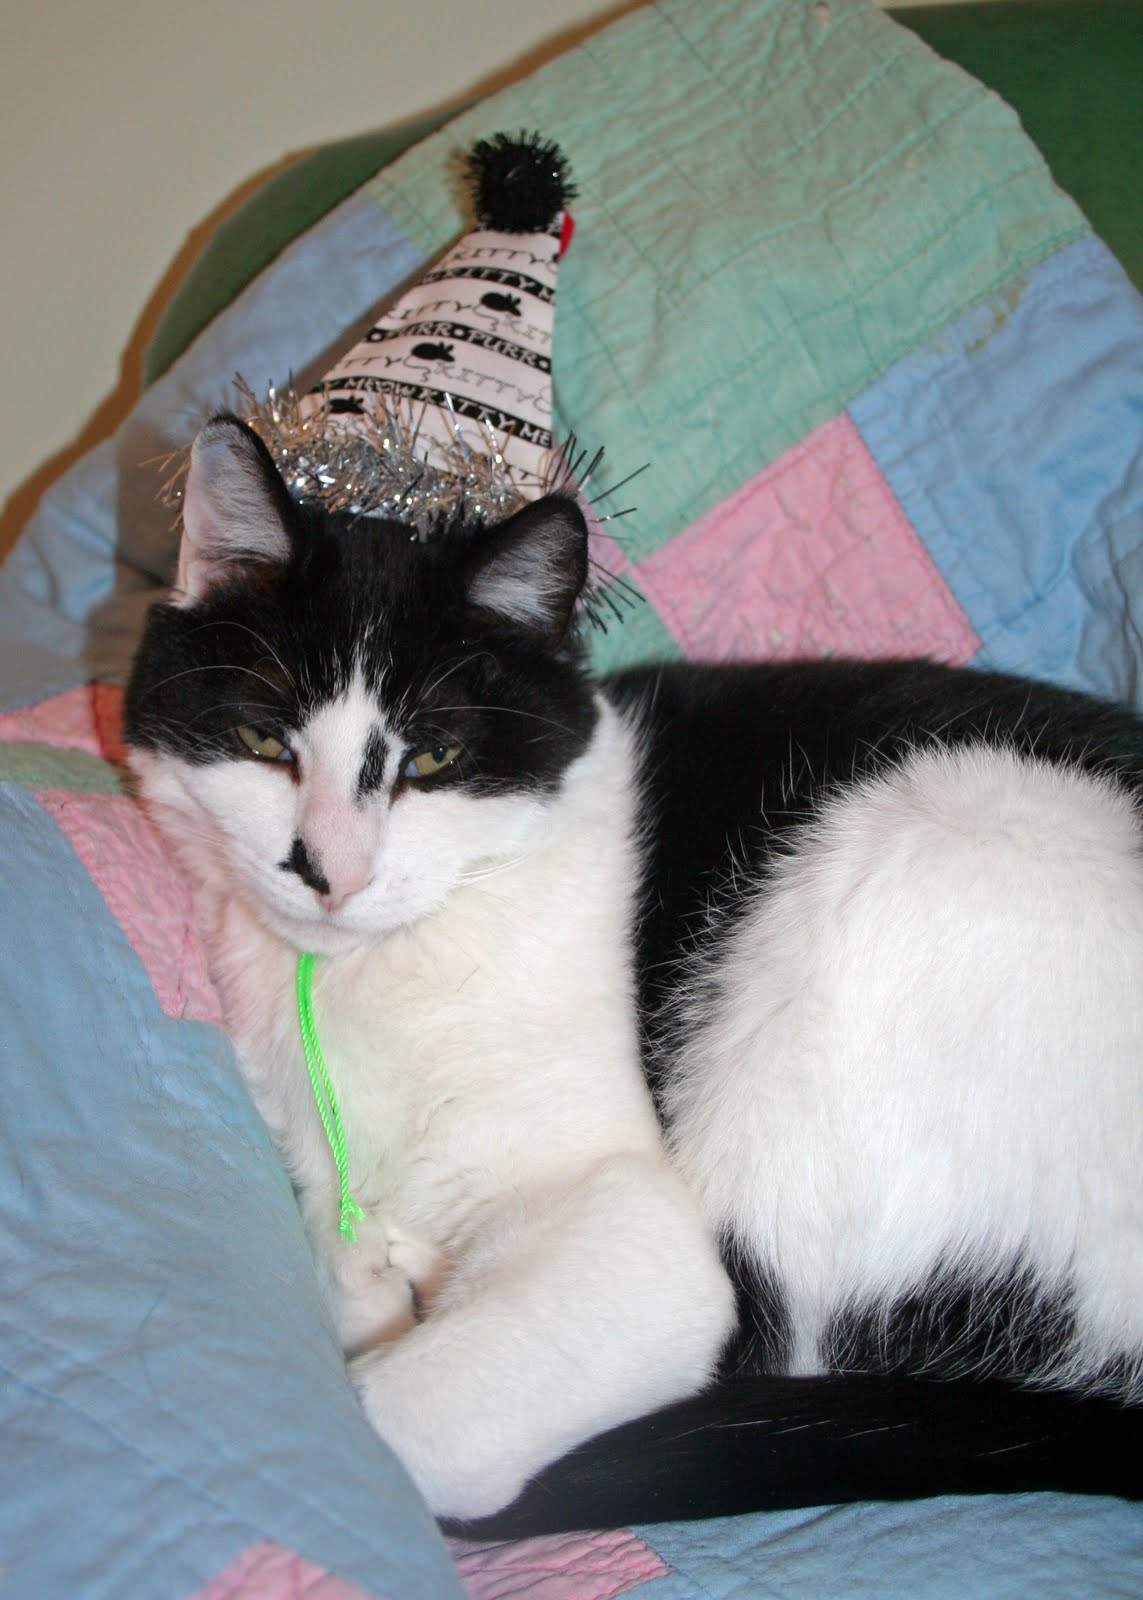 The Cat in the Clover: New Line of Party Hats for Cats!